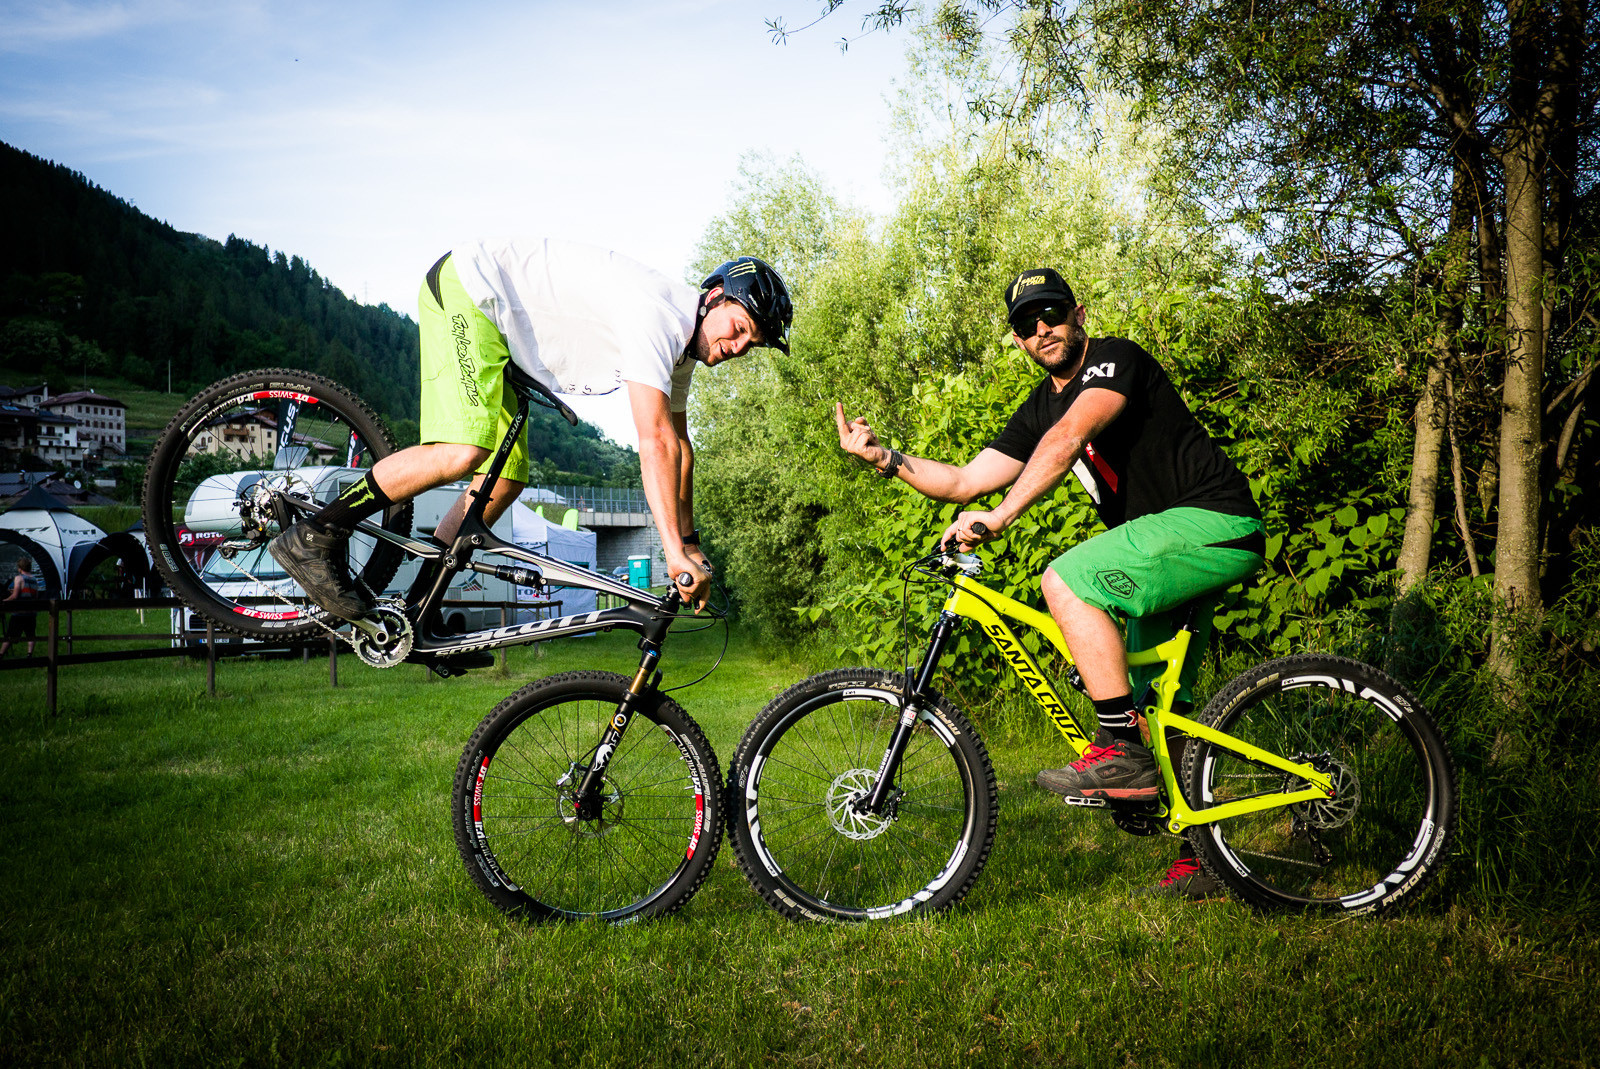 Beastie Boys or Backstreet Boys? - Pit Bits: 2013 Val di Sole World Cup - Mountain Biking Pictures - Vital MTB